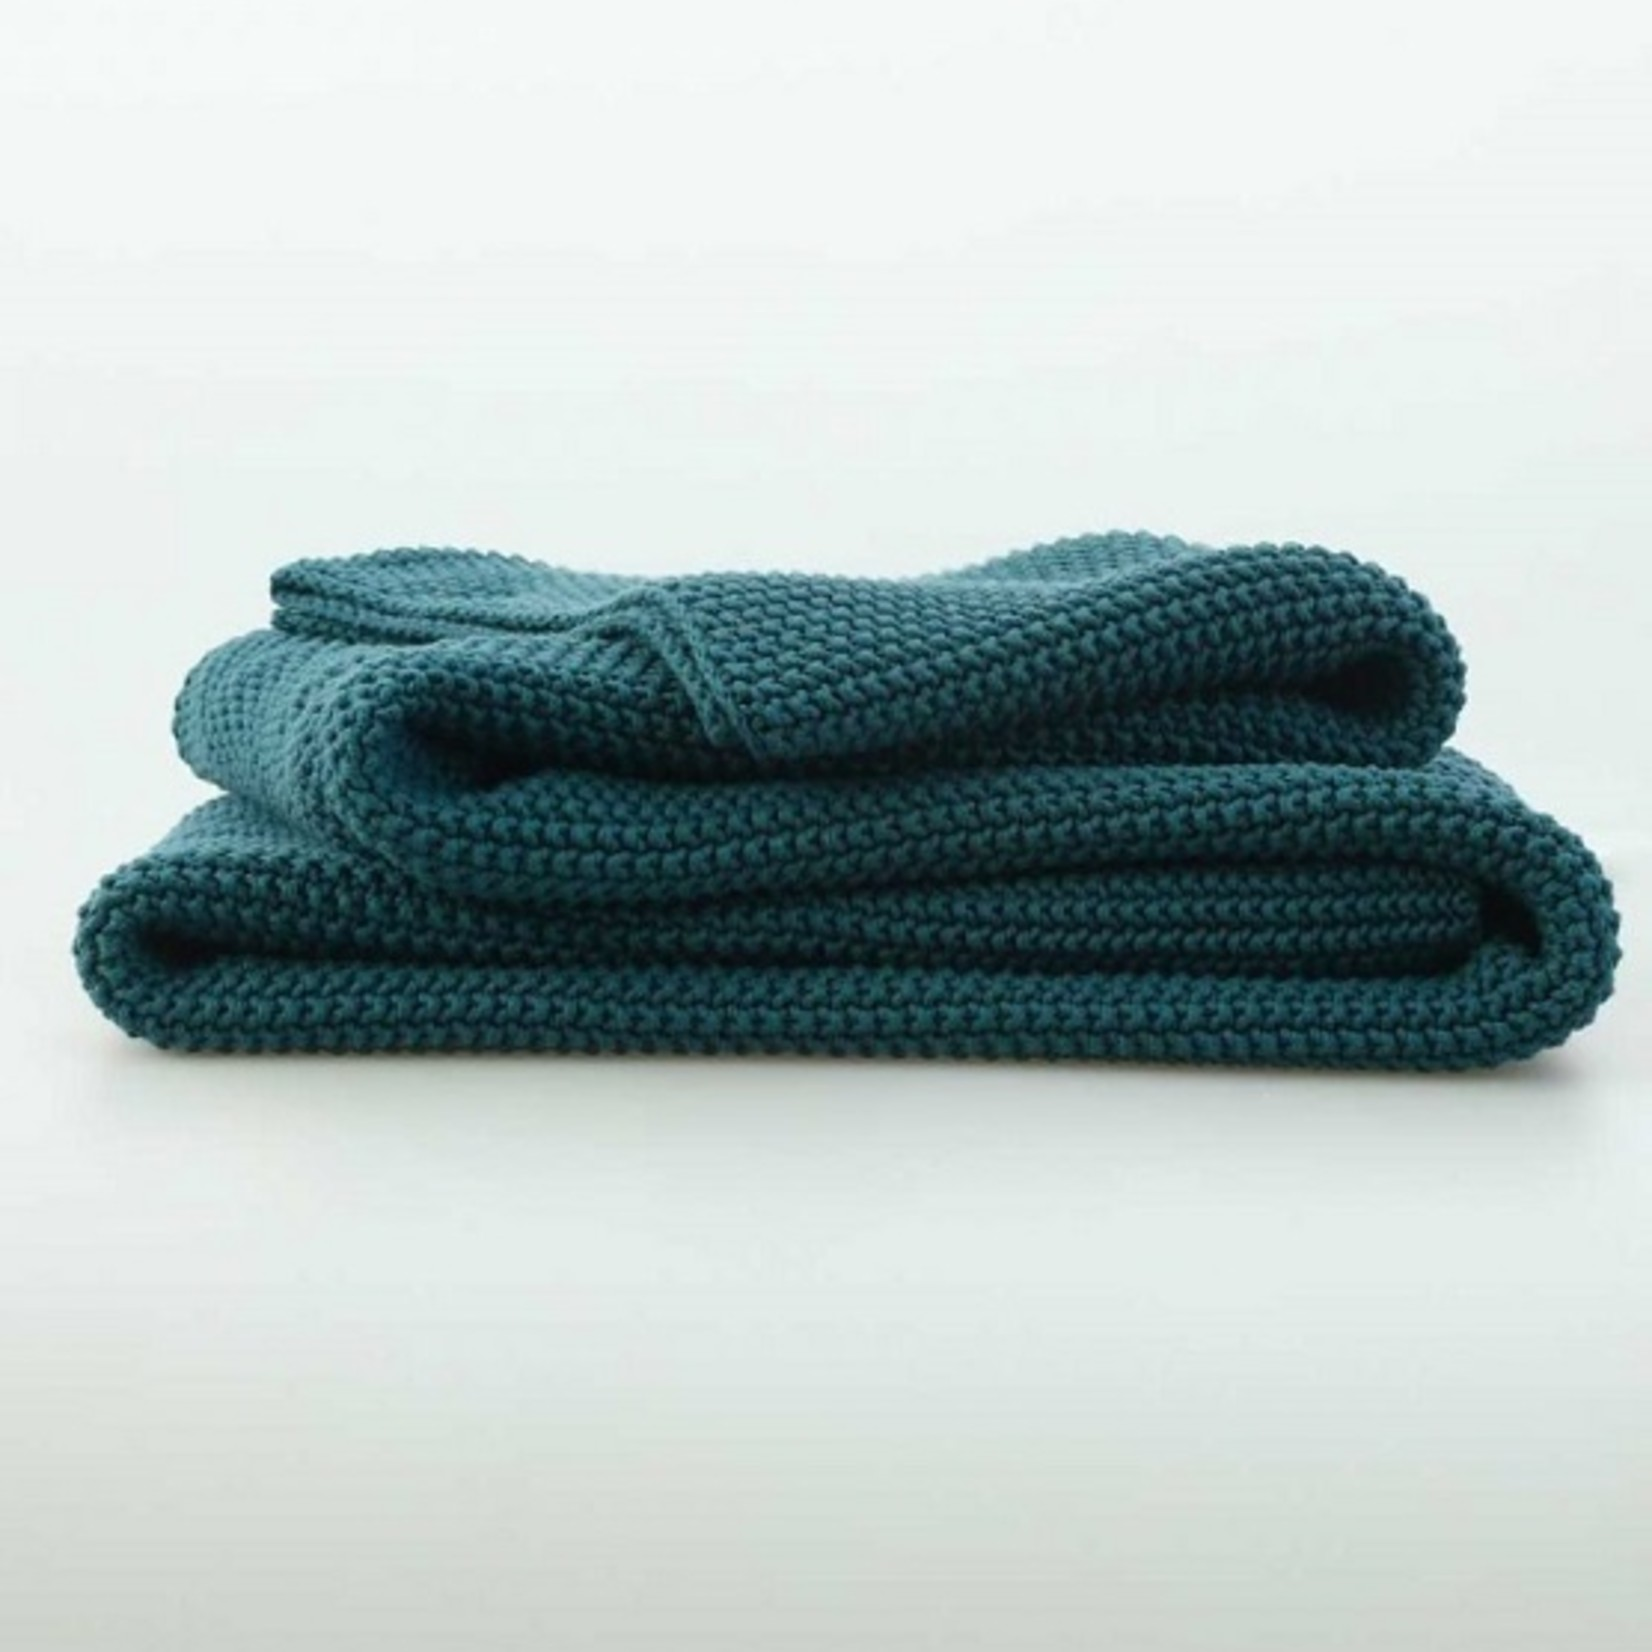 MM Linens BRONTE Throw Teal